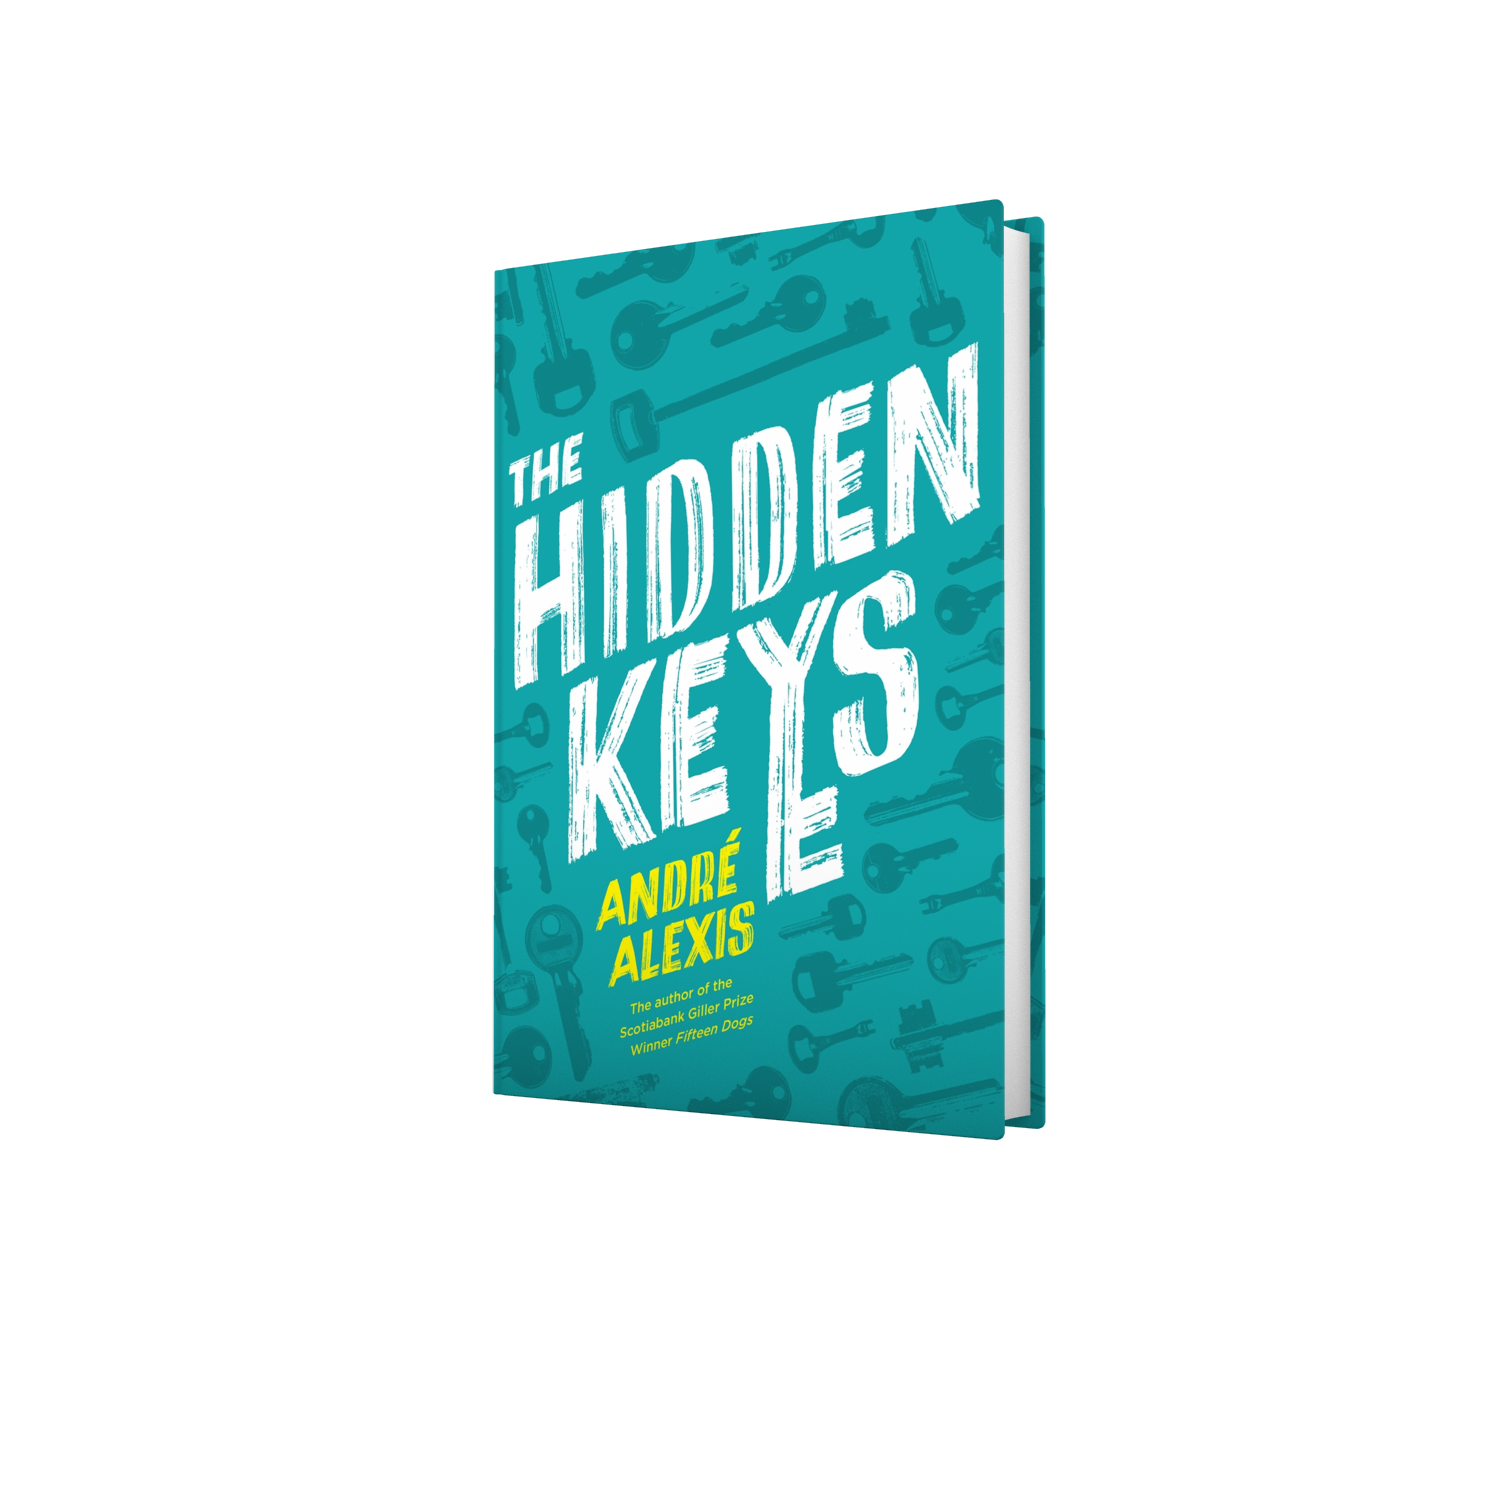 The hidden keys packshot